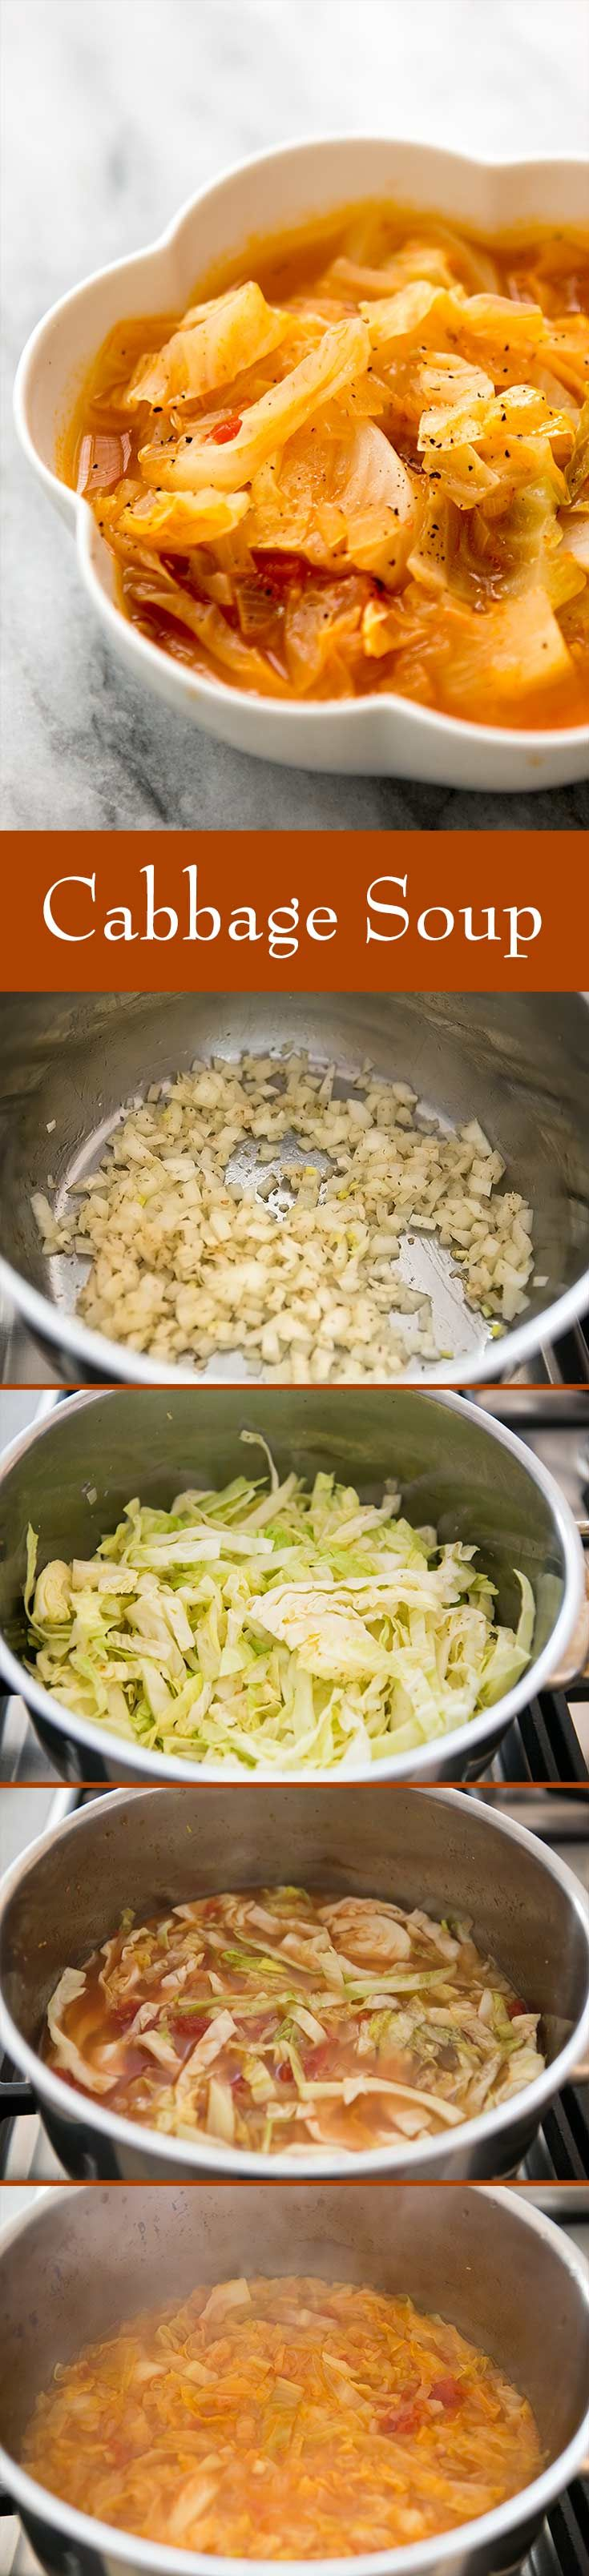 Cabbage Soup How to make simple cabbage soup that is healthy and nourishing with cabbage chicken stock onions and tomatoes On